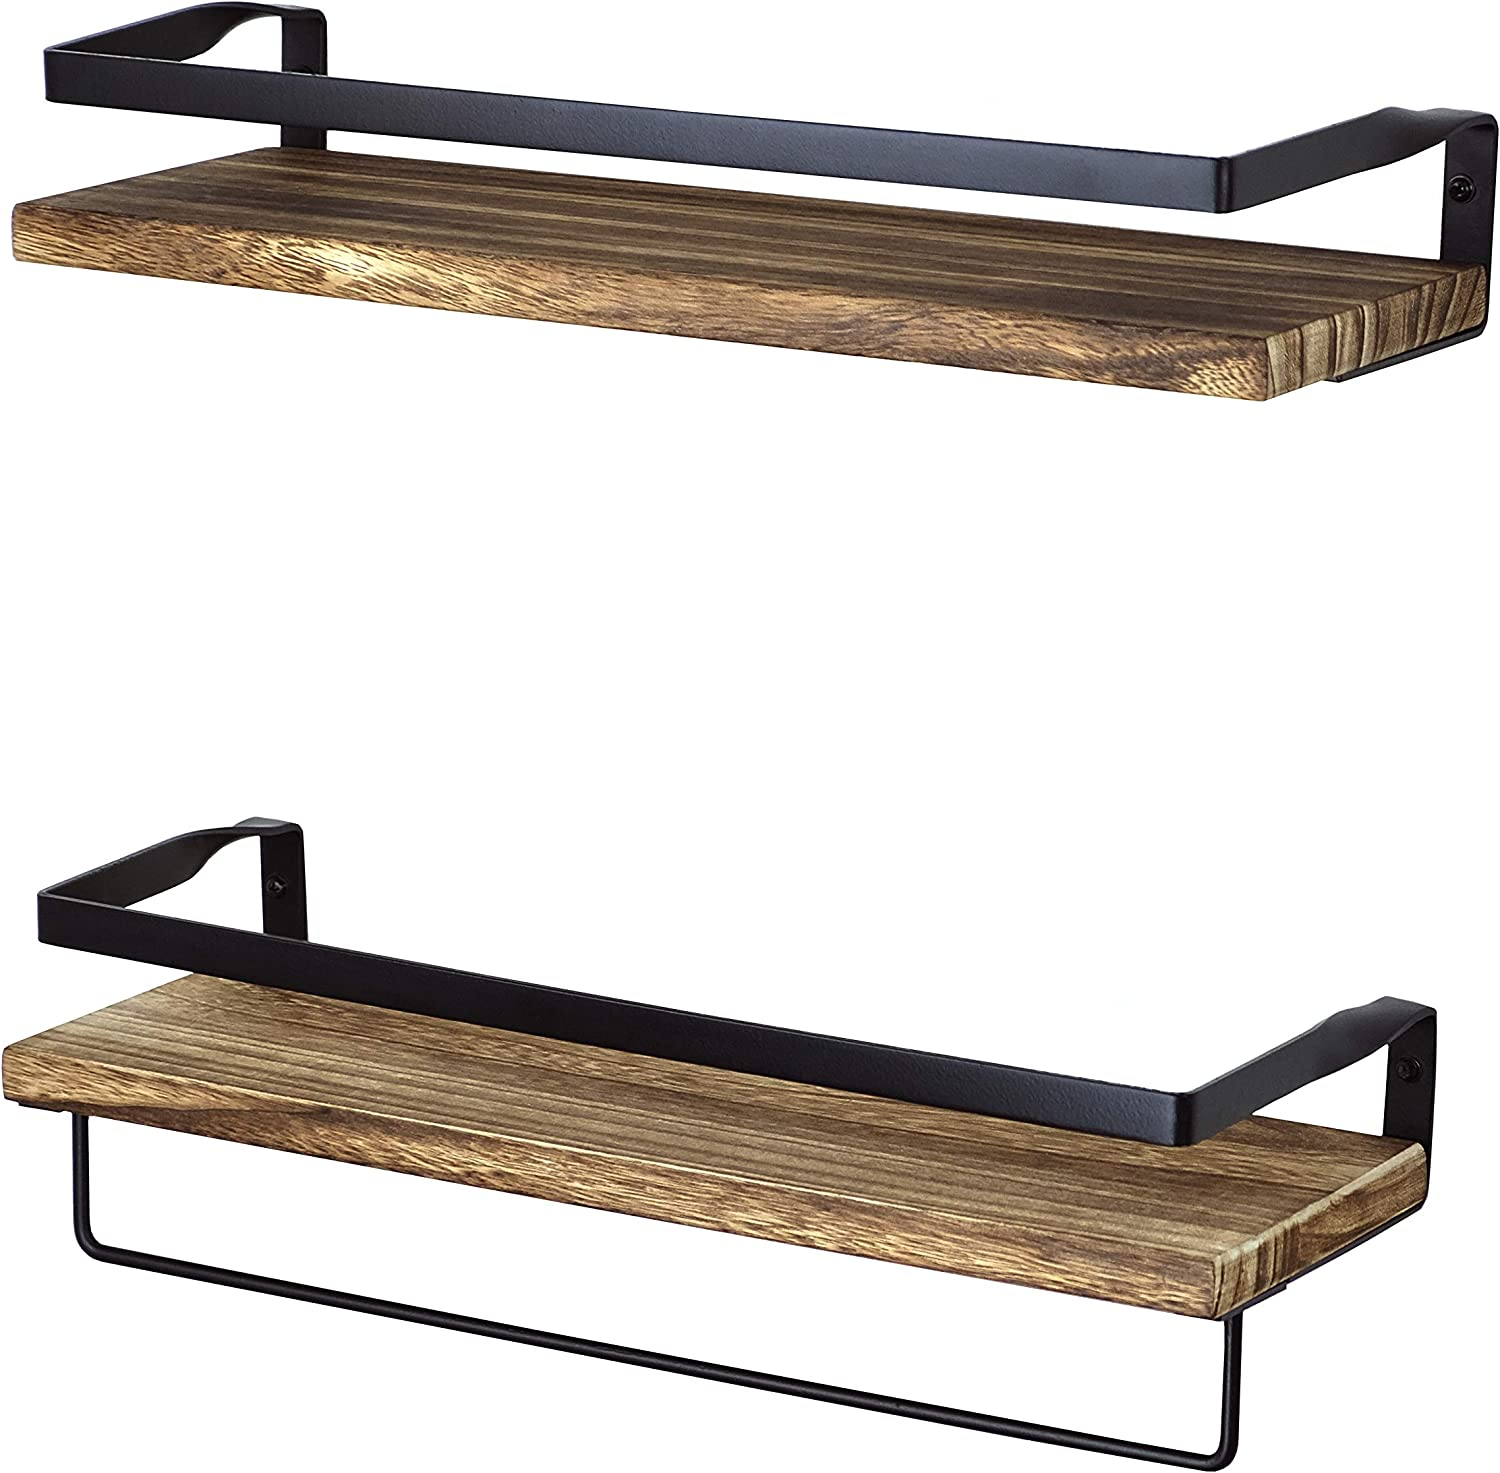 PETER'S GOODS Rustic Floating Wall Shelves with Rails - Decorative Storage for Kitchen, Bathroom, and Bedroom - Elegant, Modern Shelving - Torched Paulownia Wood, Matte Black Metal Frame - Set of 2